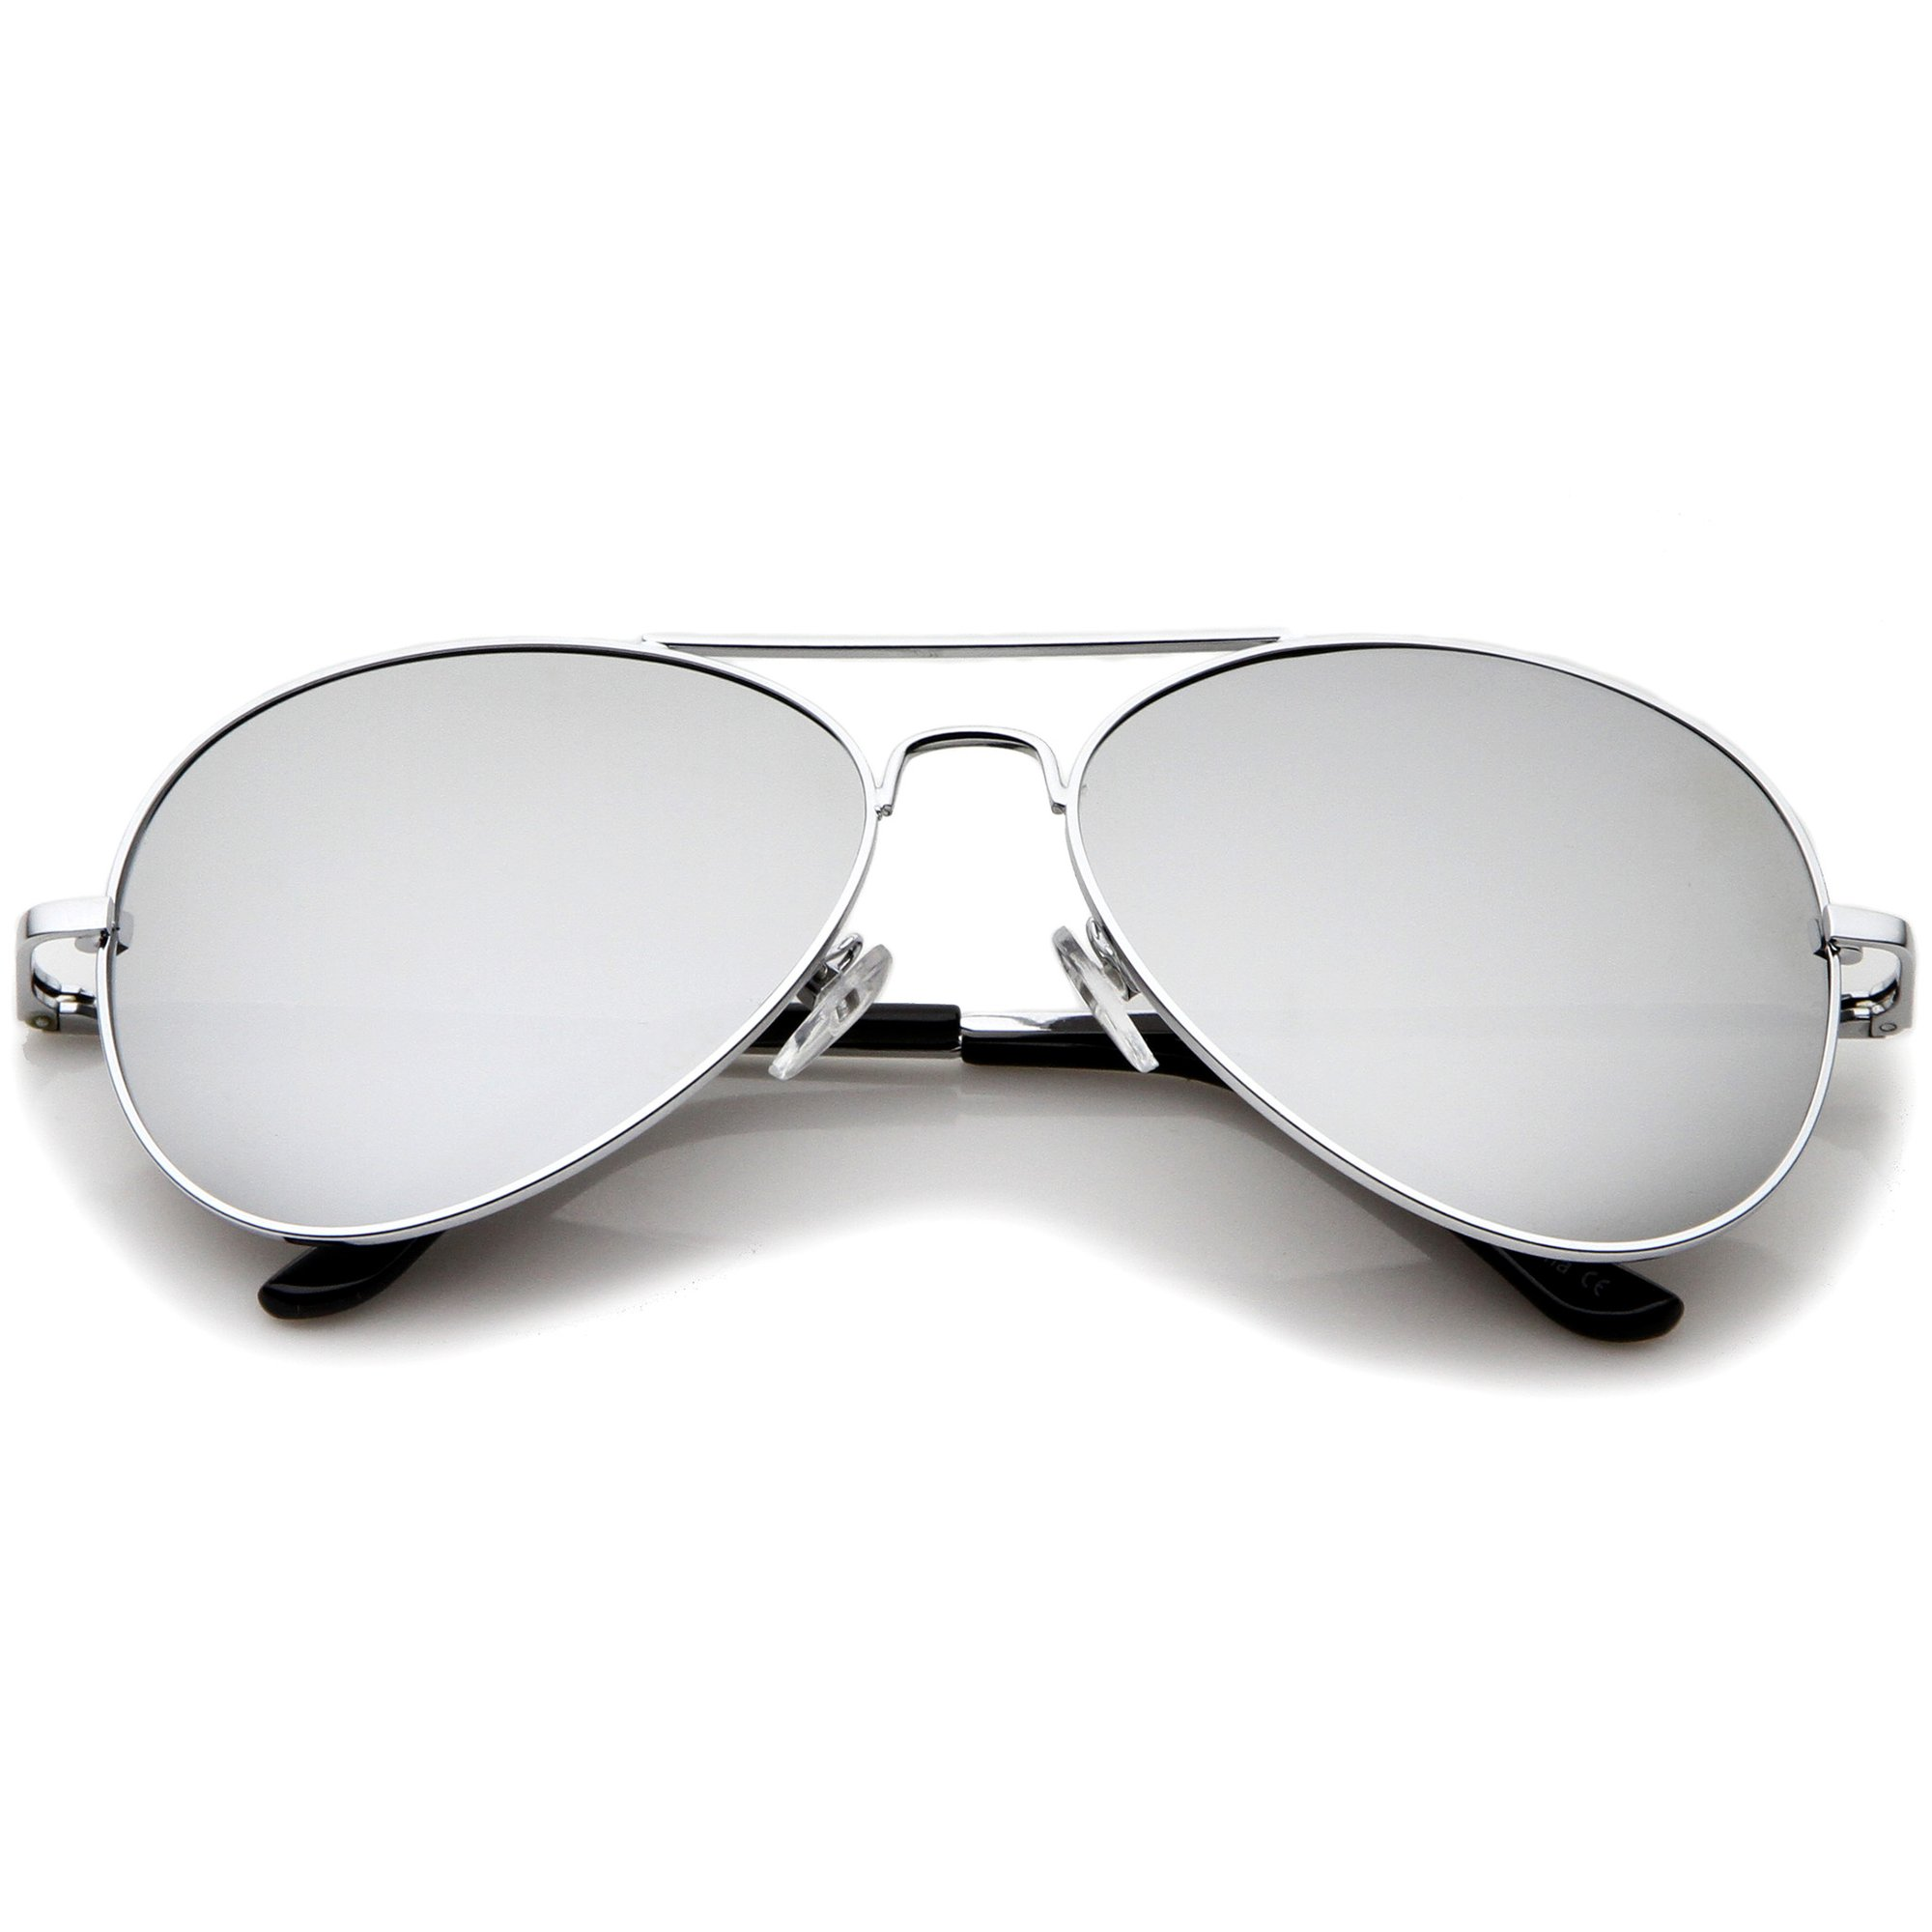 d6b81c3a8 Sunglasses – The Ultimate Fashion Accessory…For Men - Synt@x Business